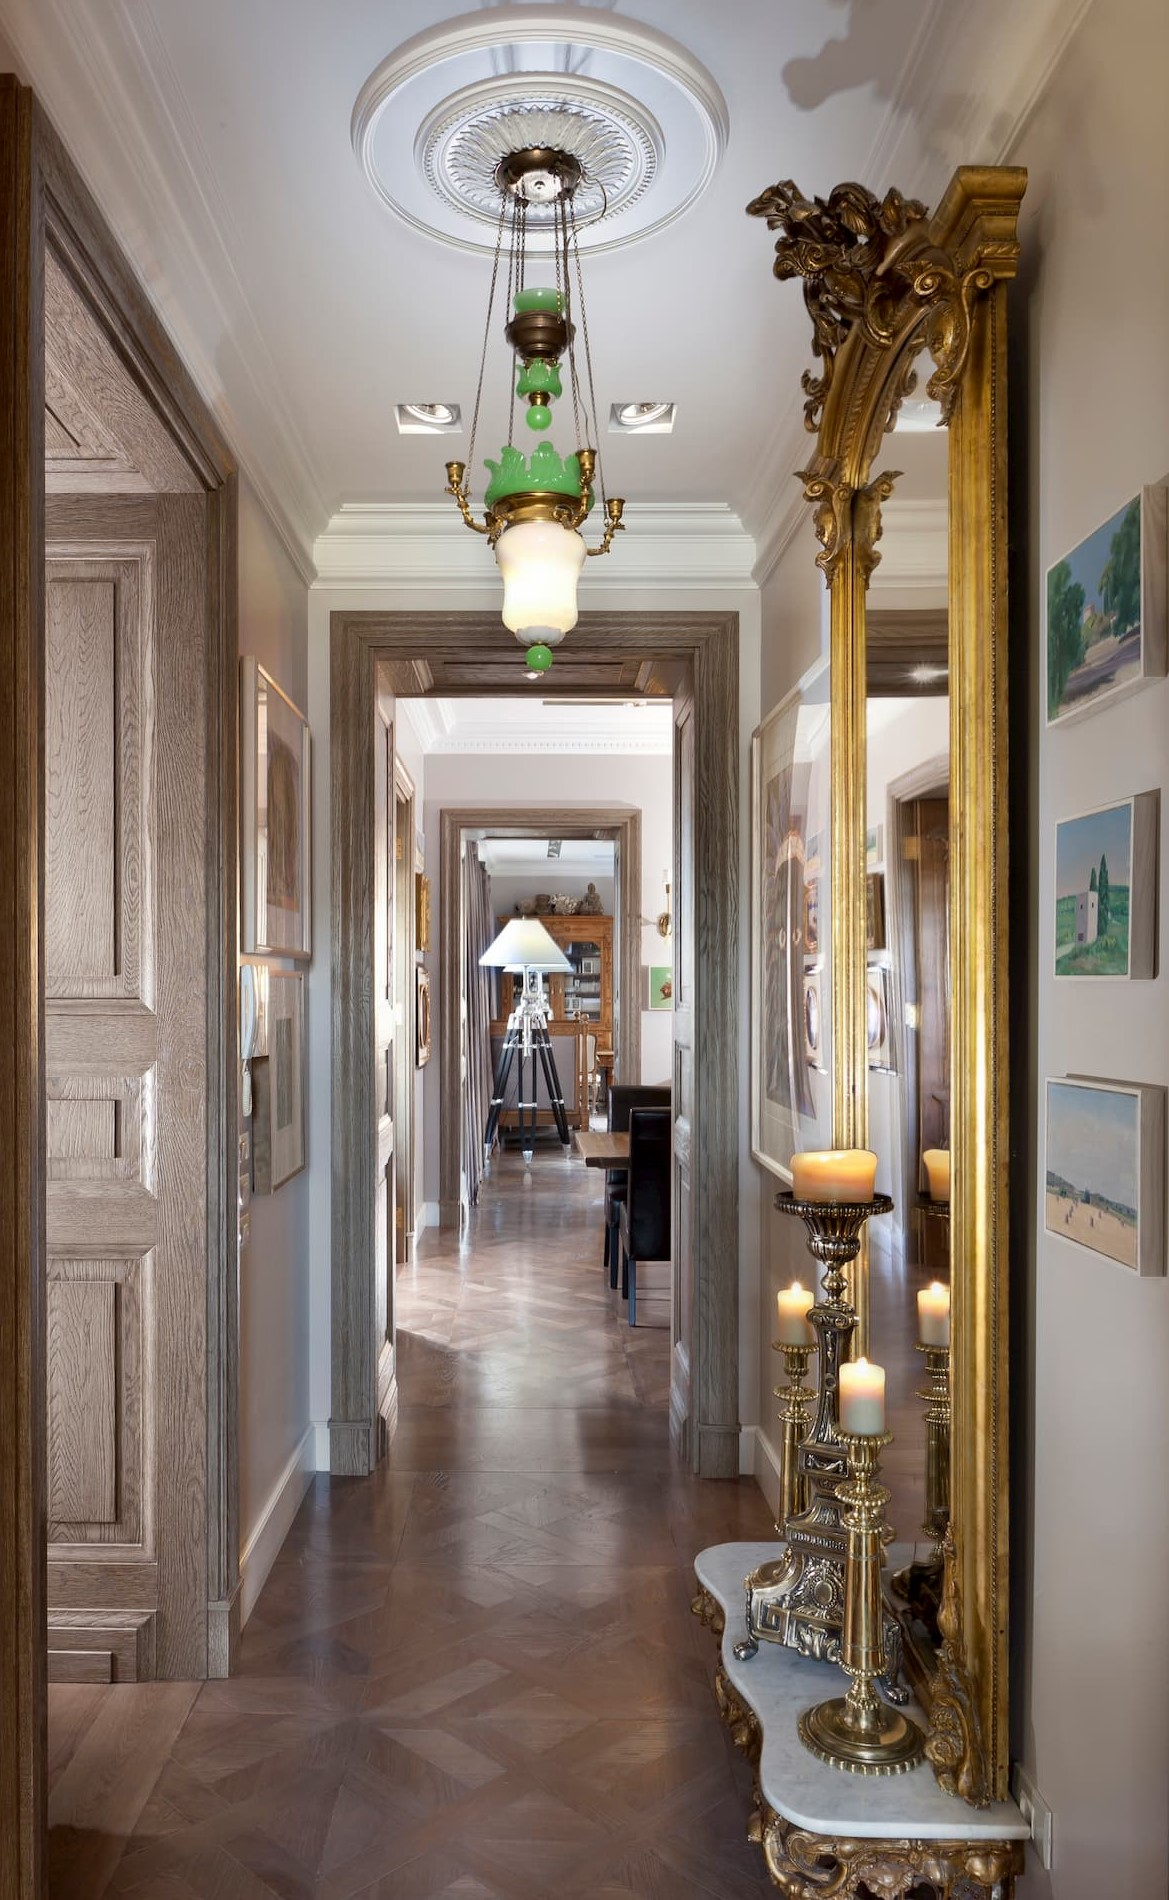 A corridor divided into sections by wooden door frames with a light oak floor and cornices framing the ceiling. A gilded mirror hangs on the wall with 3 antique bronze candlesticks beside it.